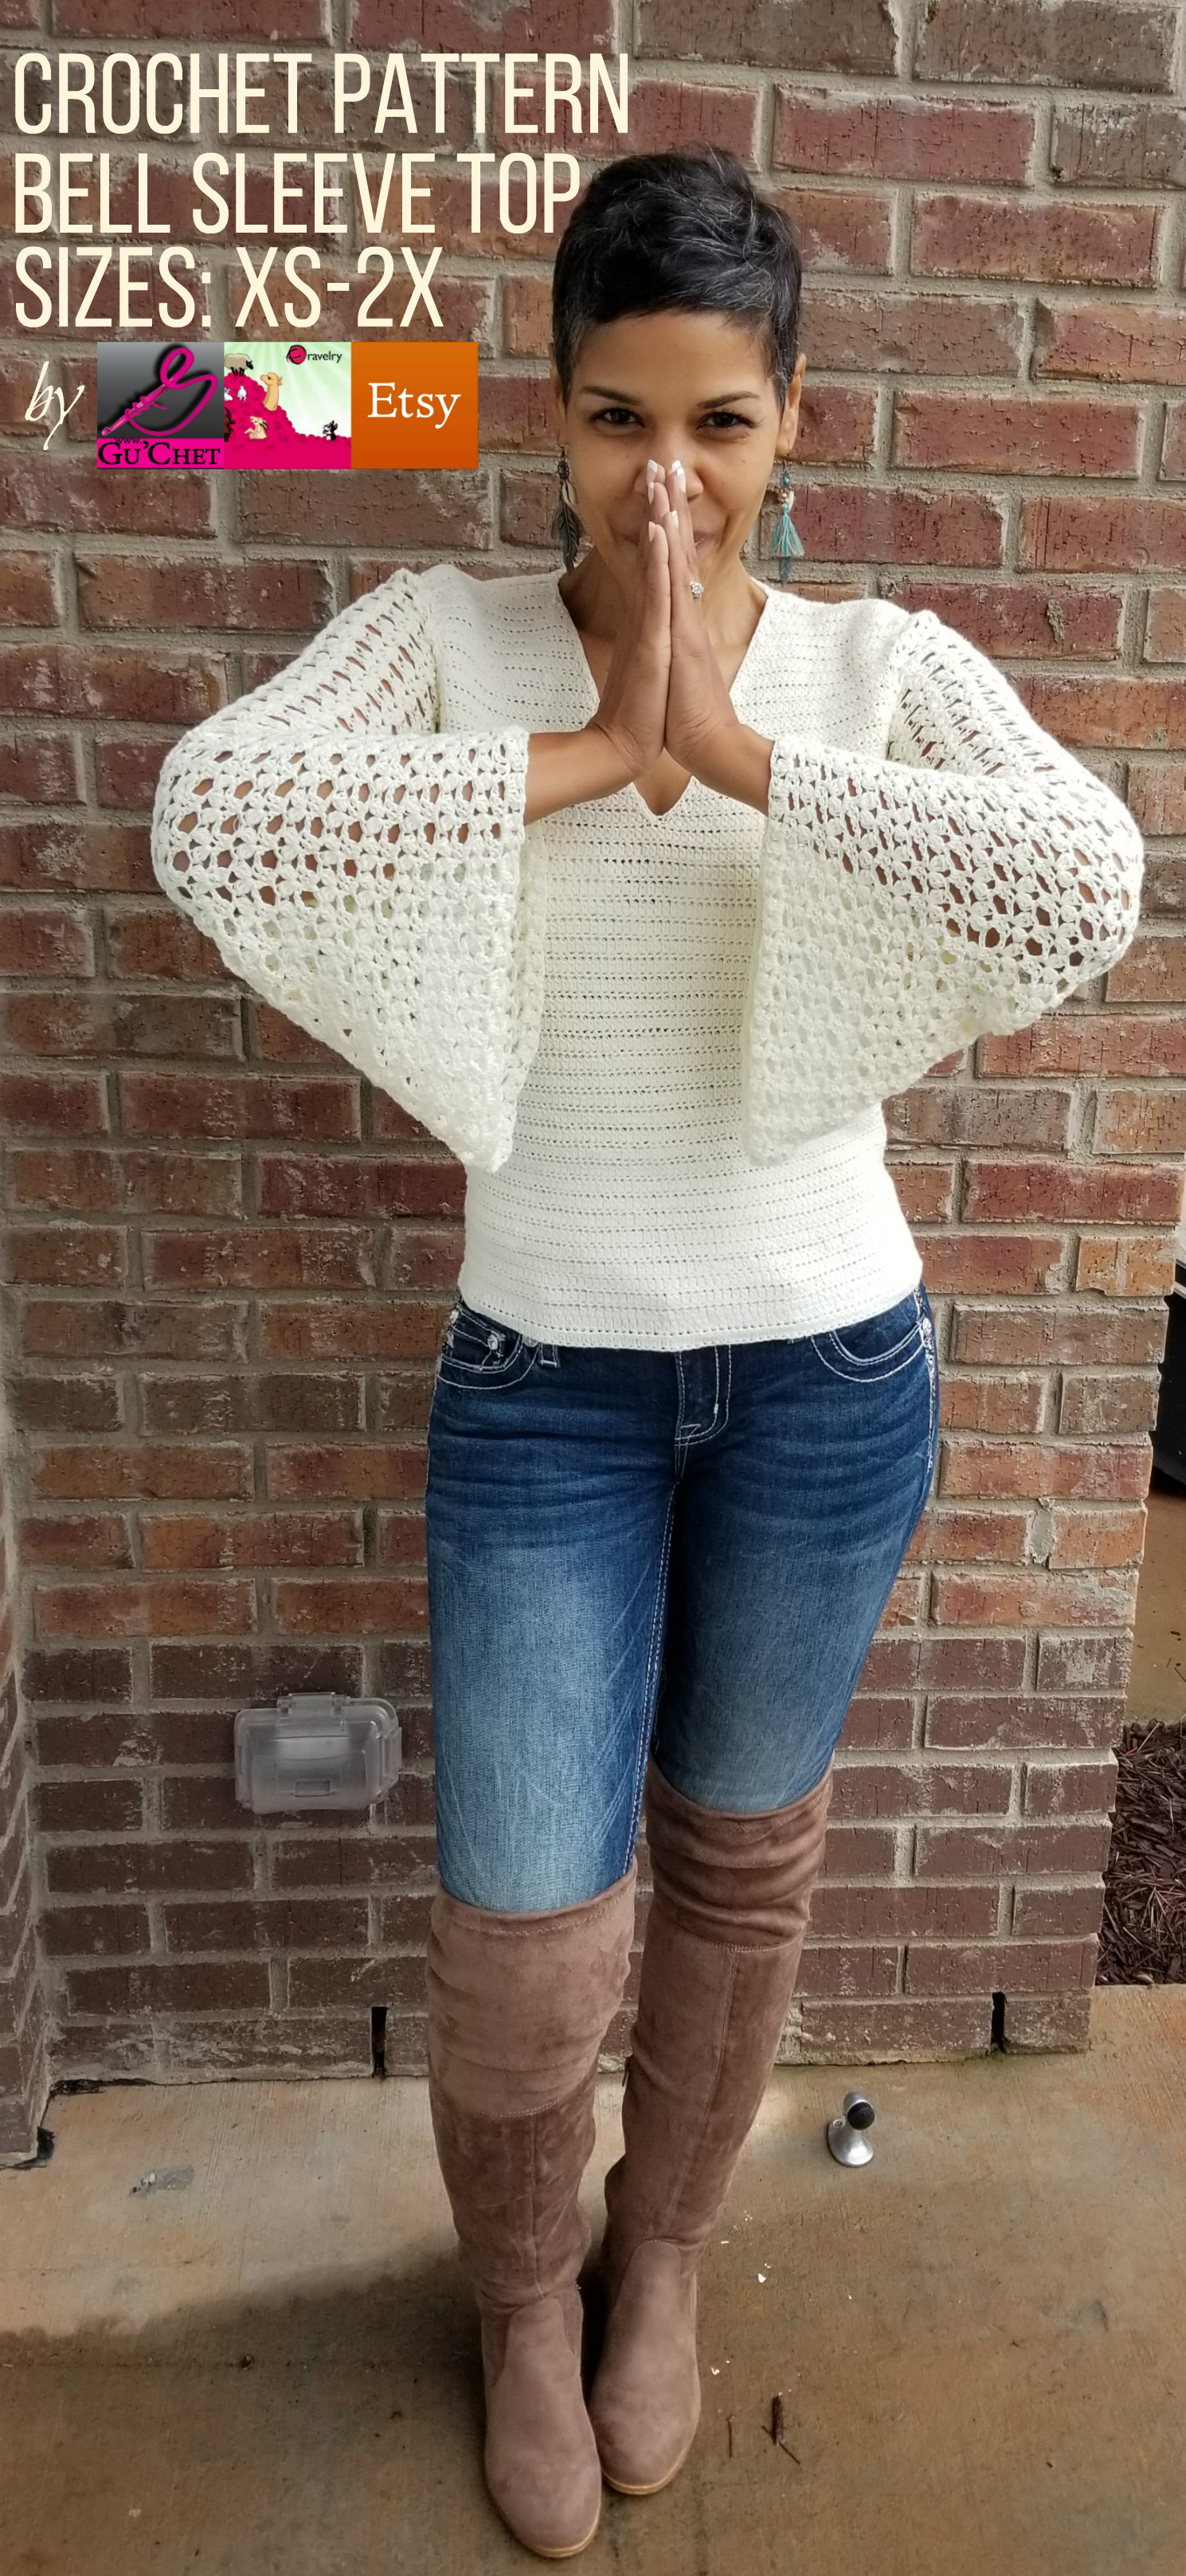 8_Crochet Top Pattern by GuChet_Bell Sleeve Top_3.jpg